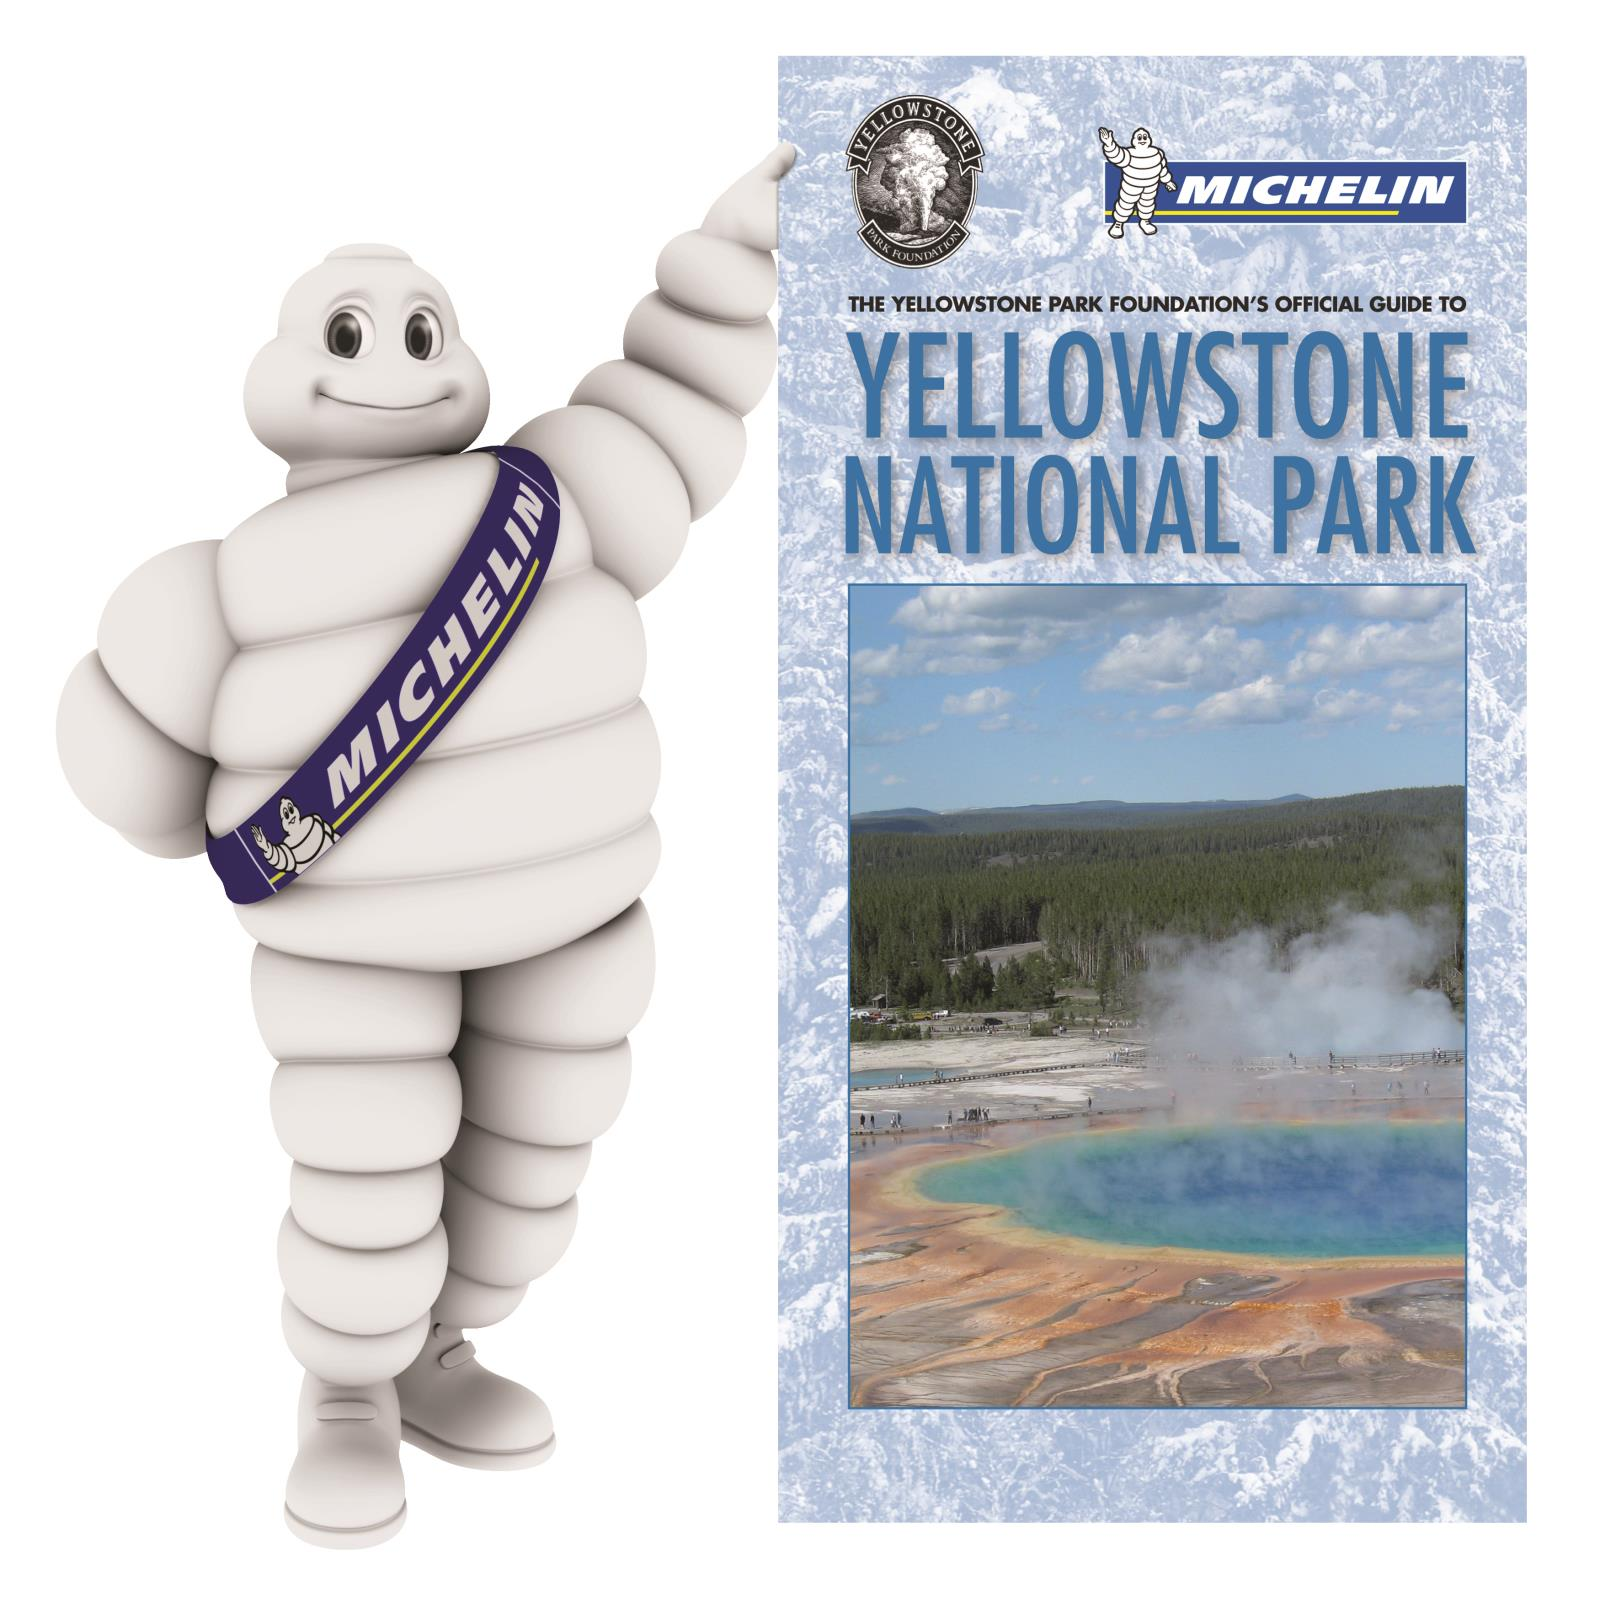 Michelin To Continue Donating Its Advanced Tires To Yellowstone National Park Through 2016 Michelin North America Inc